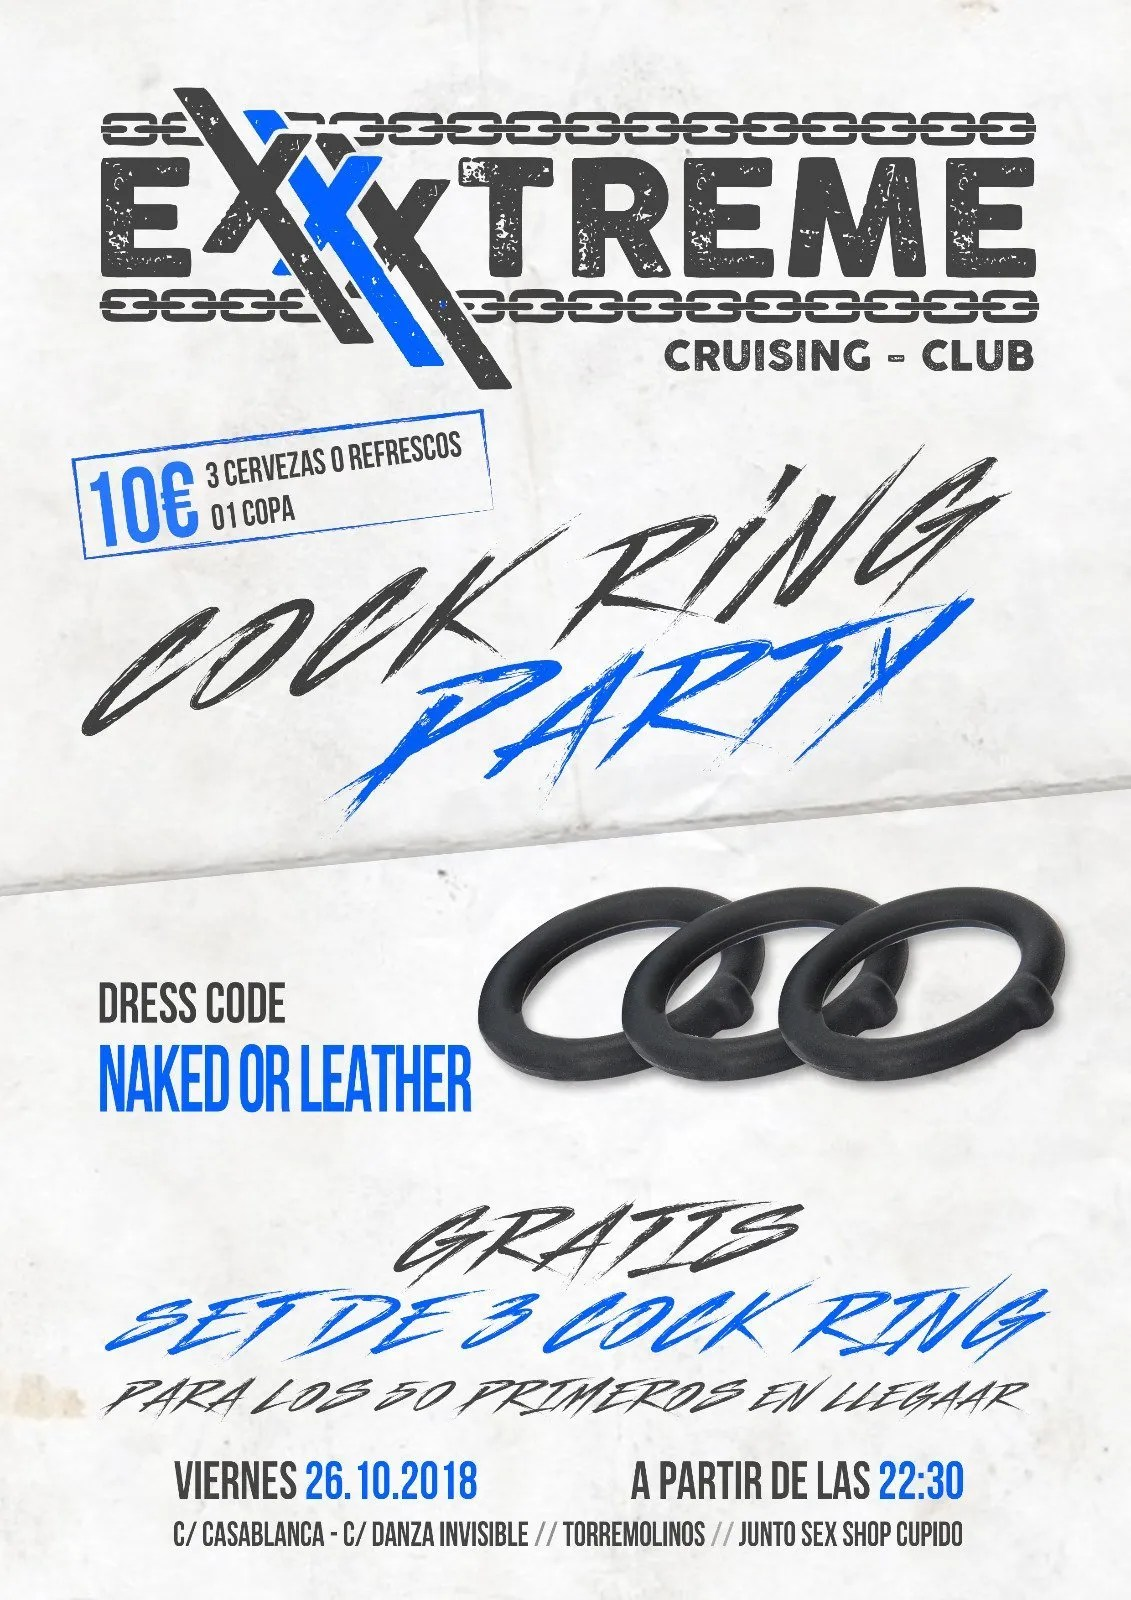 VIERNES 25 COCK RING PARTY EN EXXXTREME CLUB